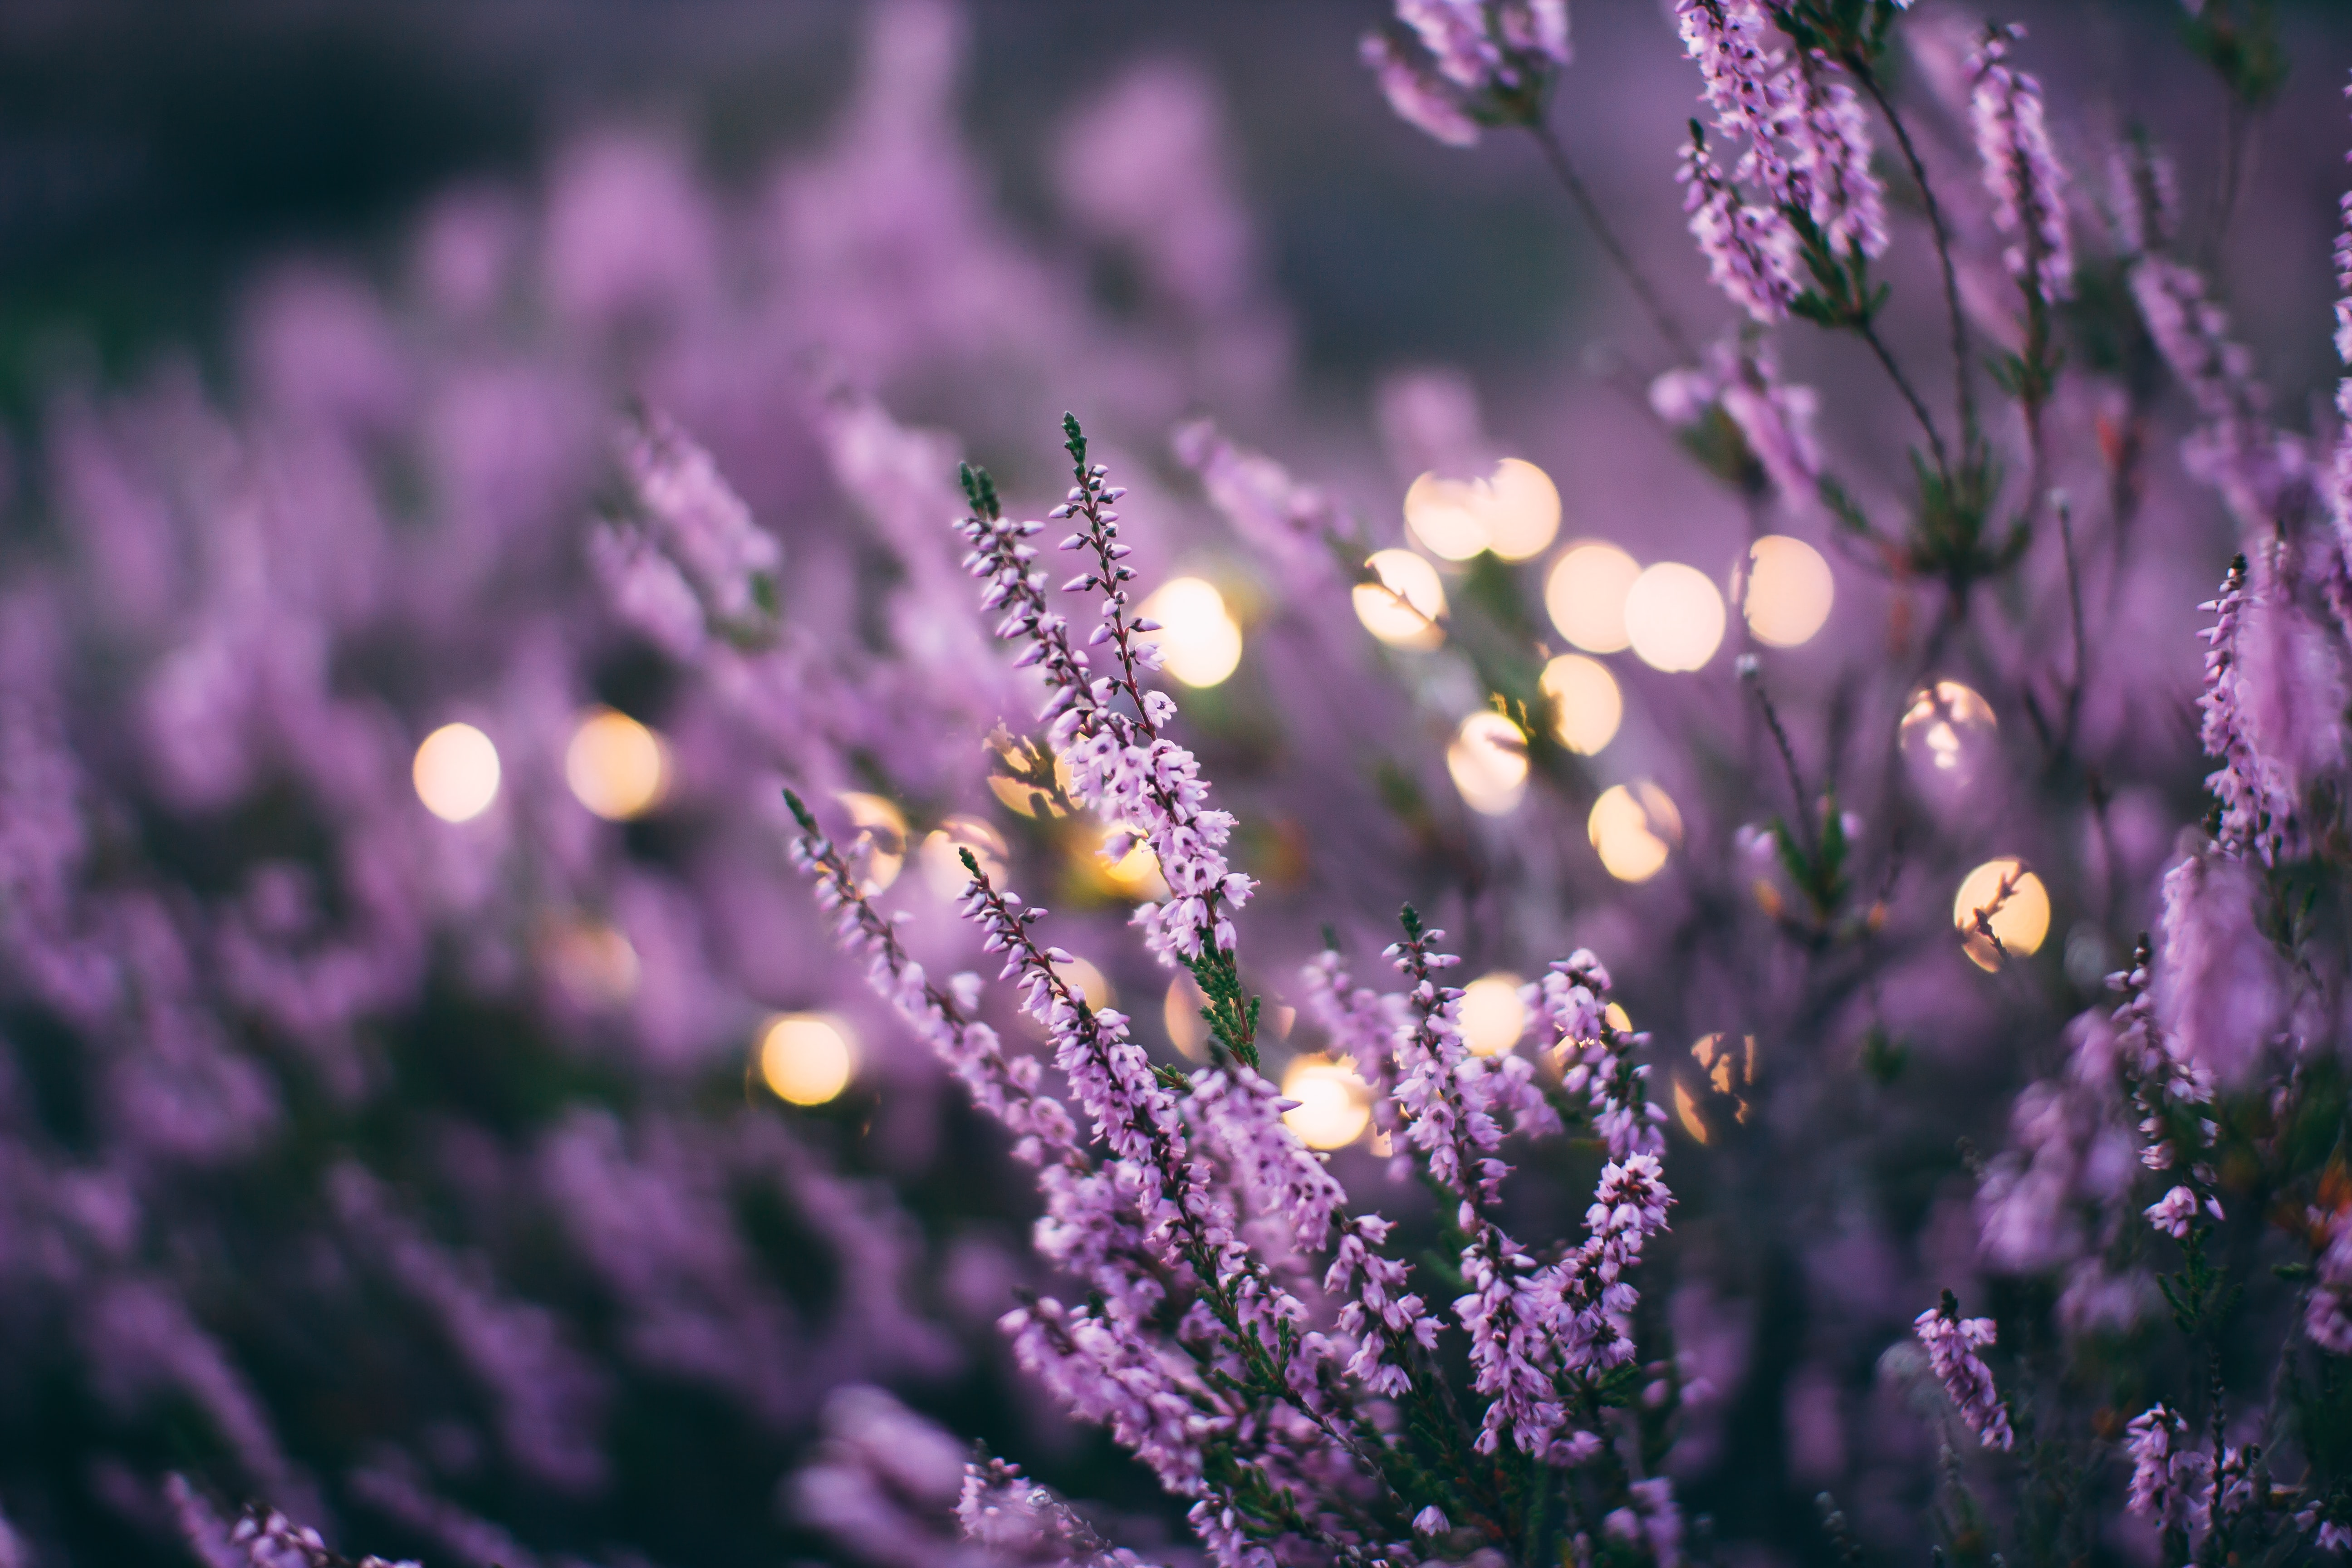 A large patch of lavender flowers with bokeh effect in the background